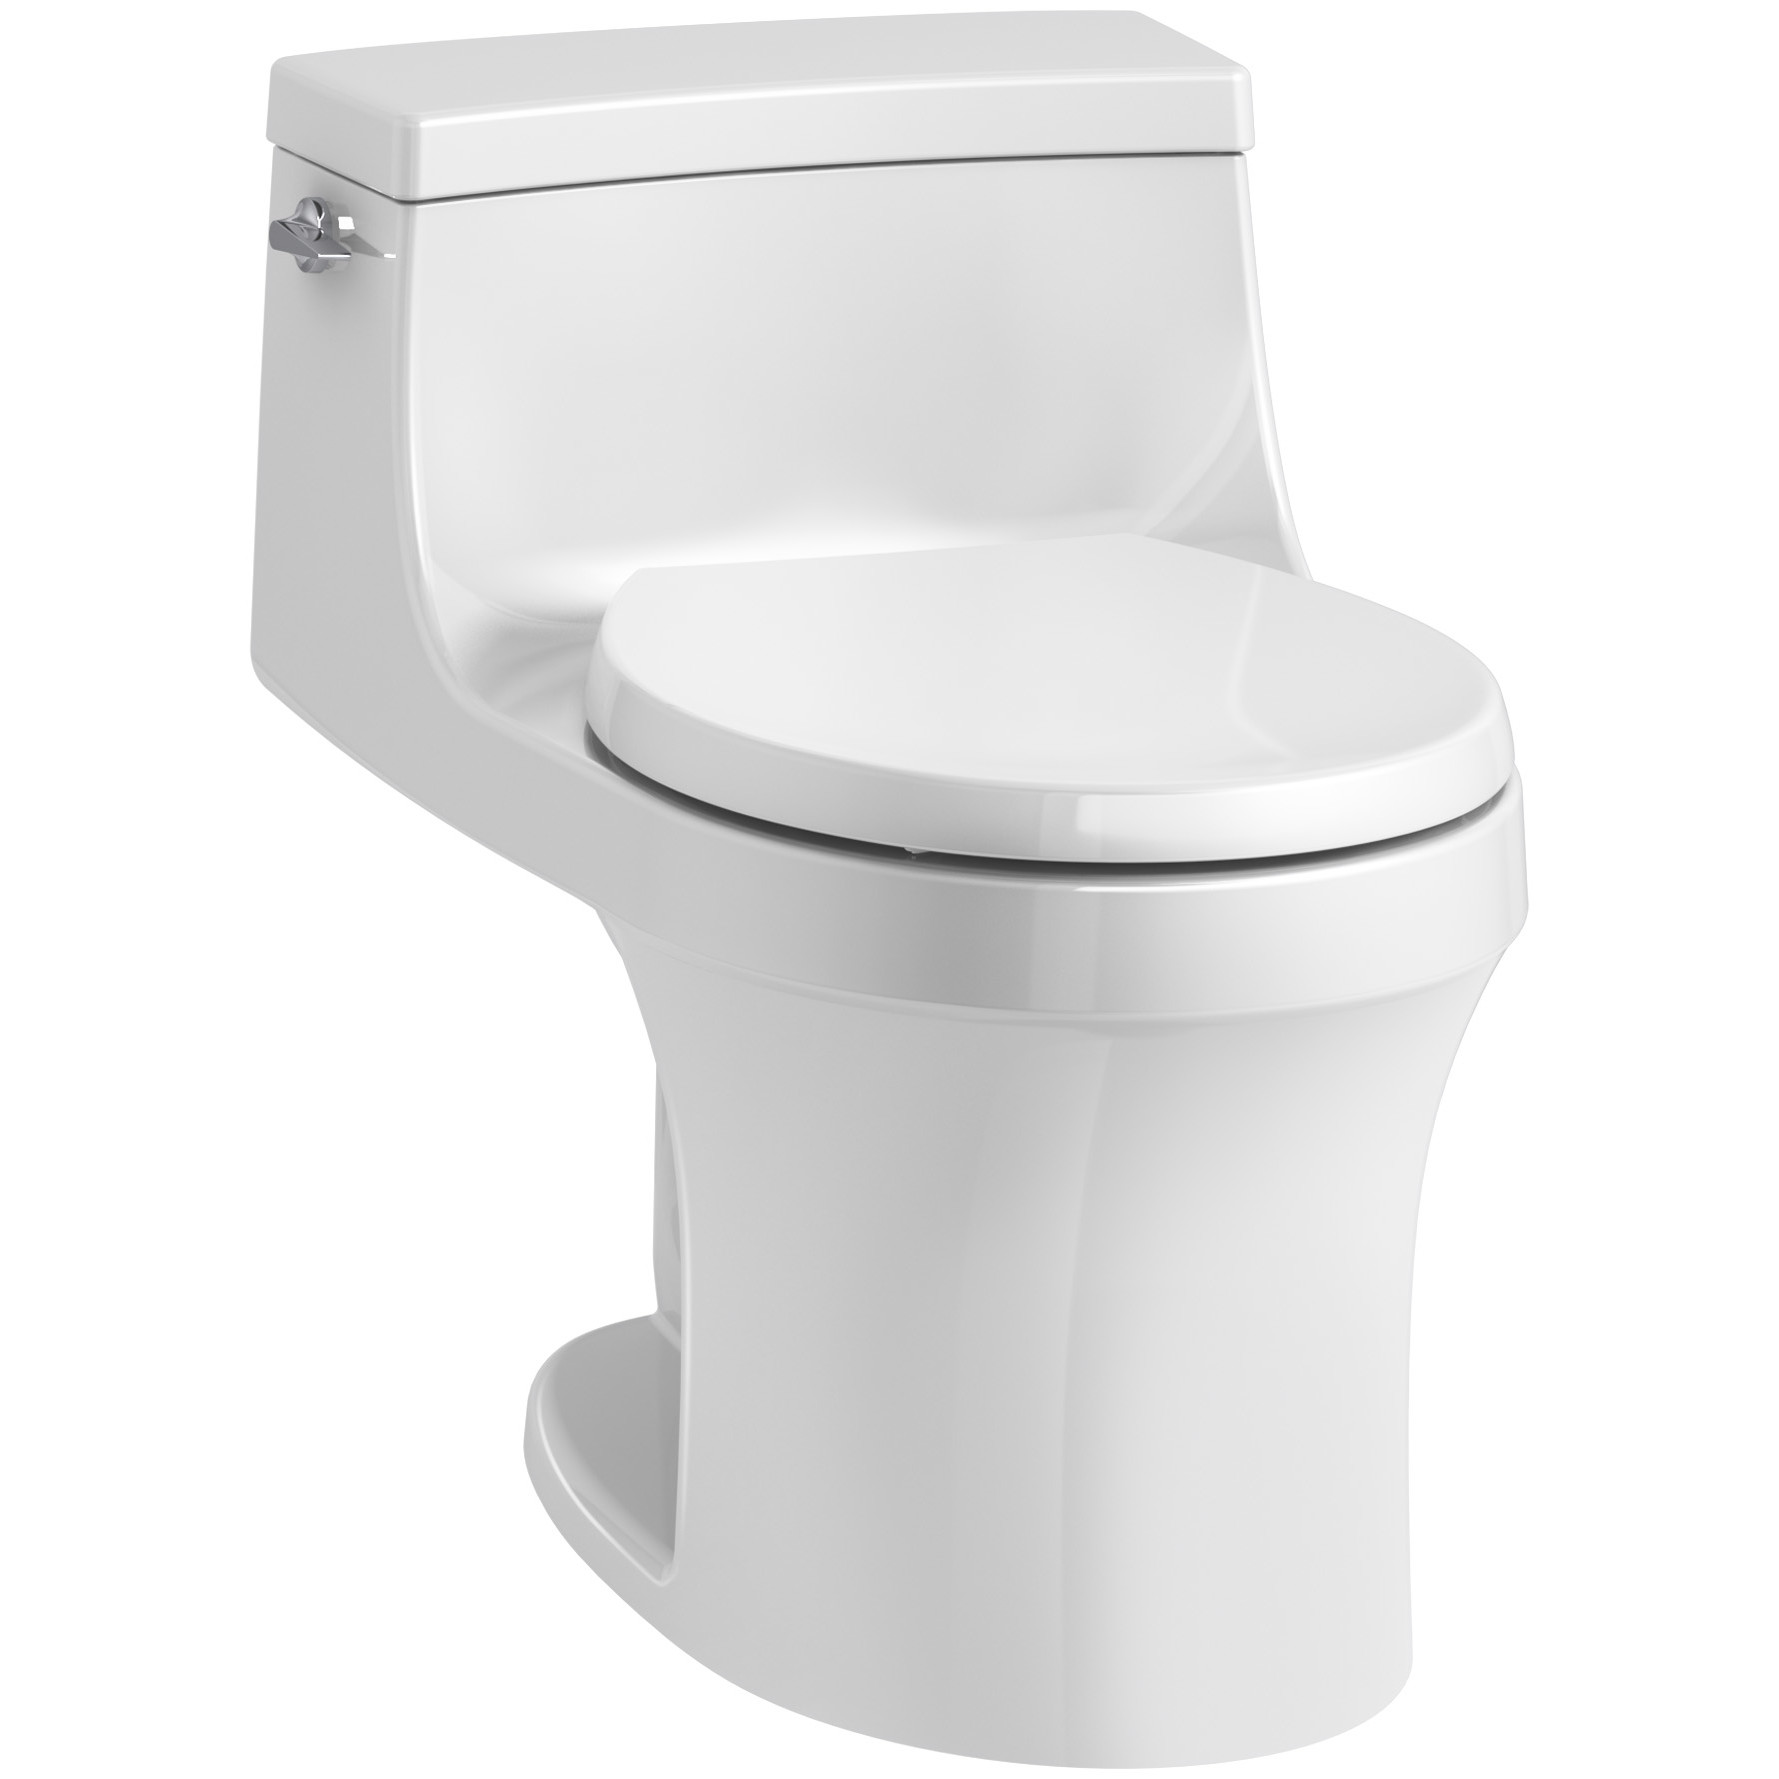 Toilet Bowl Extension | Saniflo Macerating Toilet | Saniflo